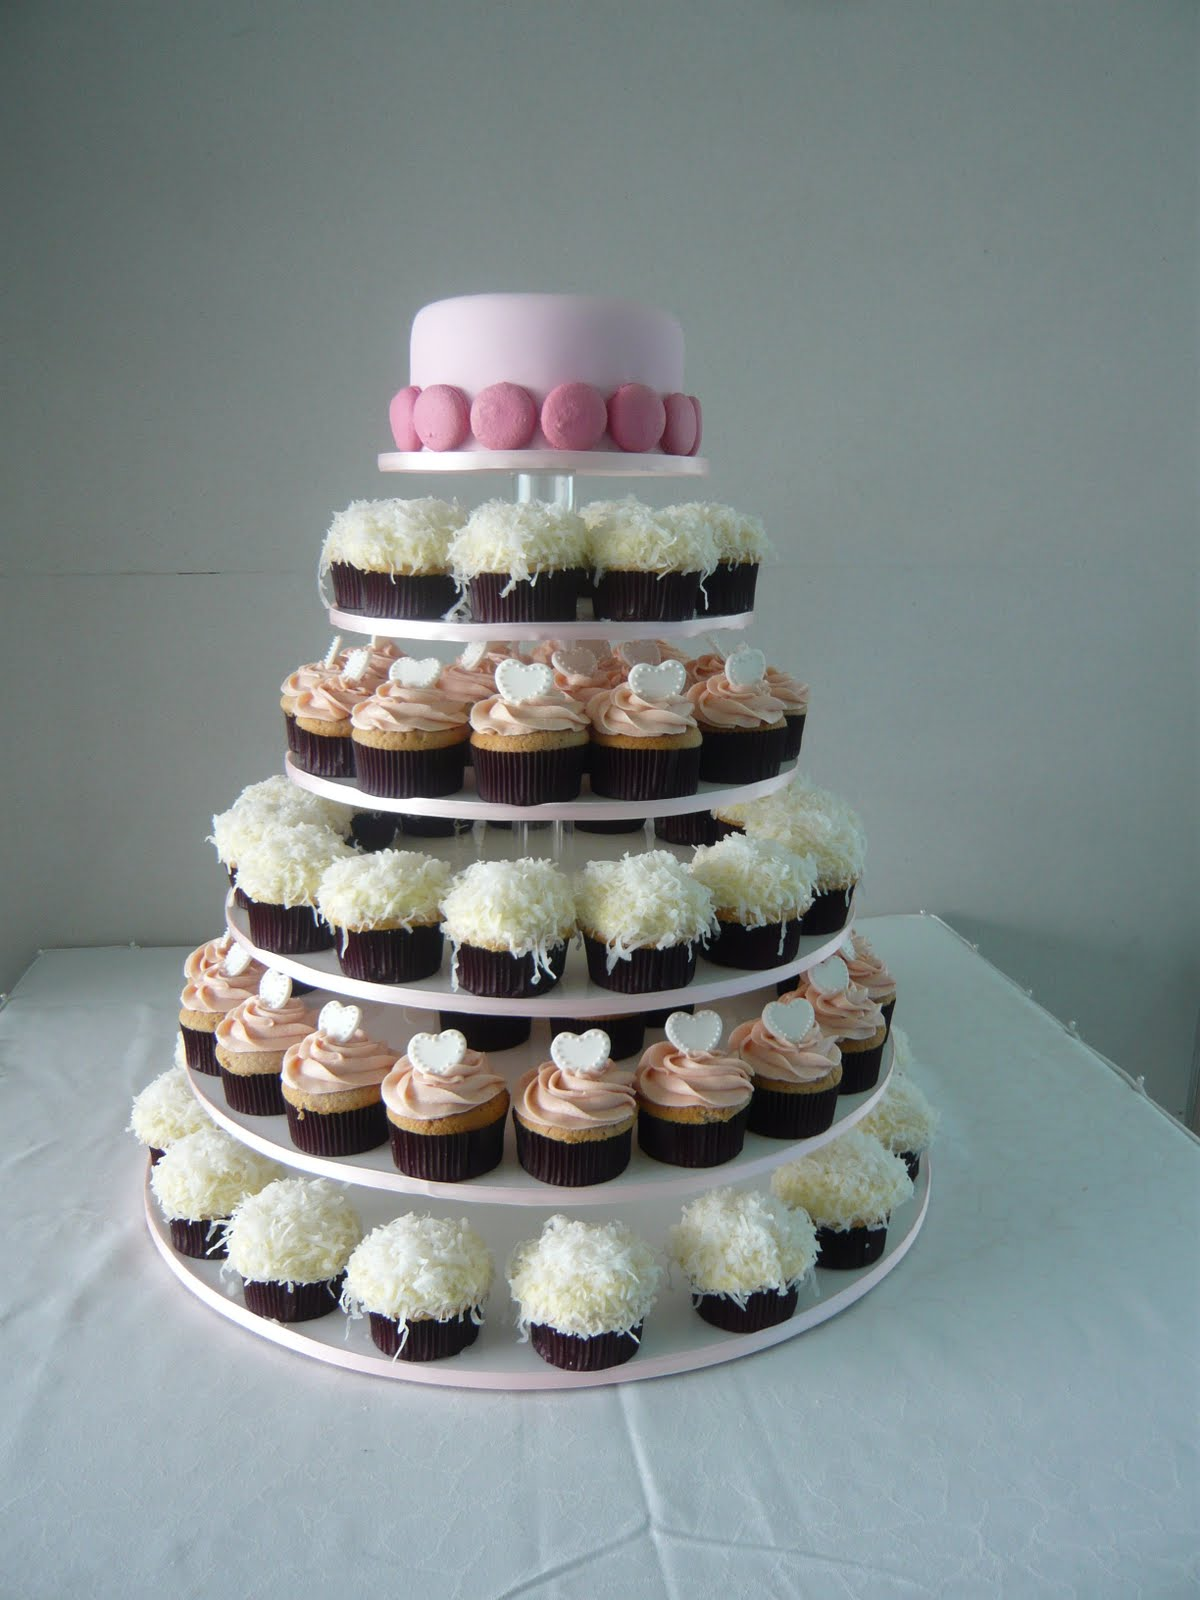 Cupcakes Tower